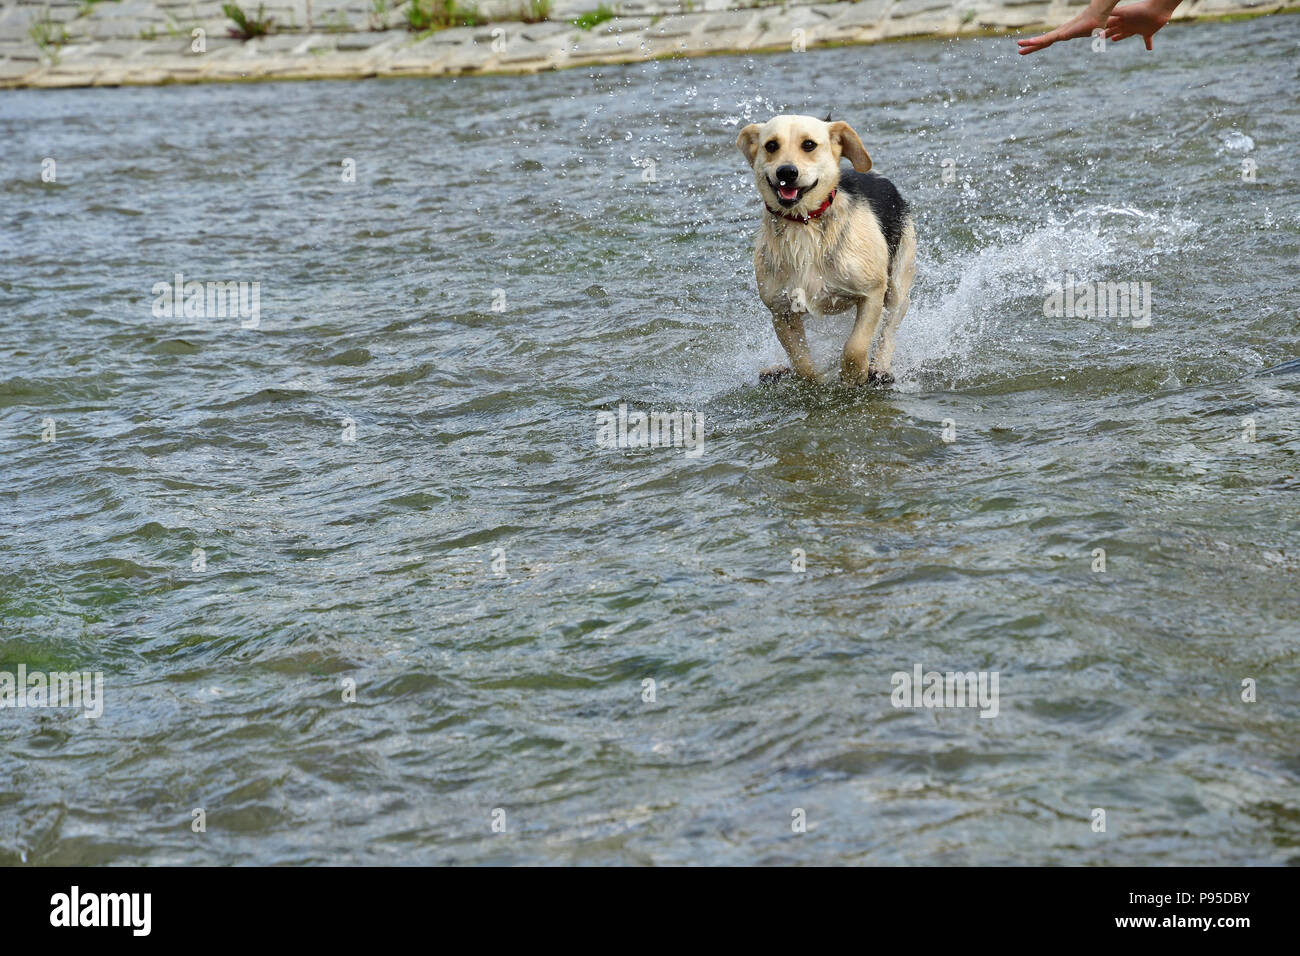 Dog to refresh in water during hot summer jumping in the river - Stock Image